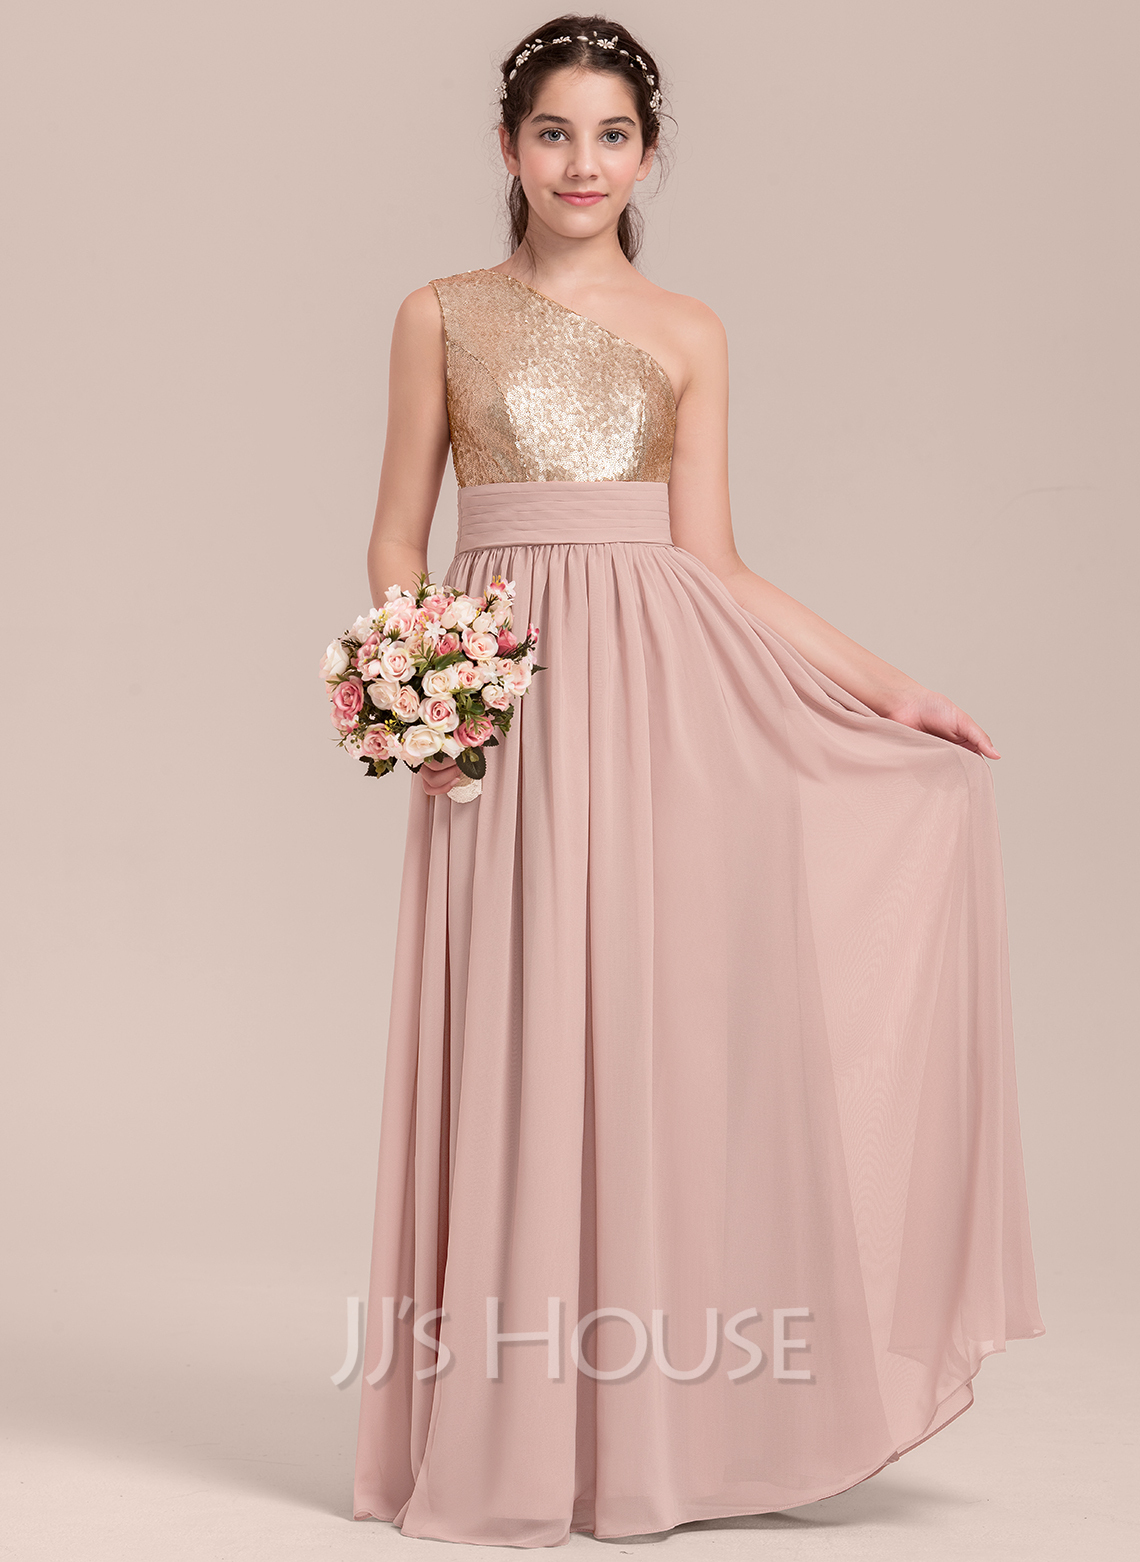 9f6f492c8e279 A-Line/Princess One-Shoulder Floor-Length Chiffon Junior Bridesmaid Dress  With